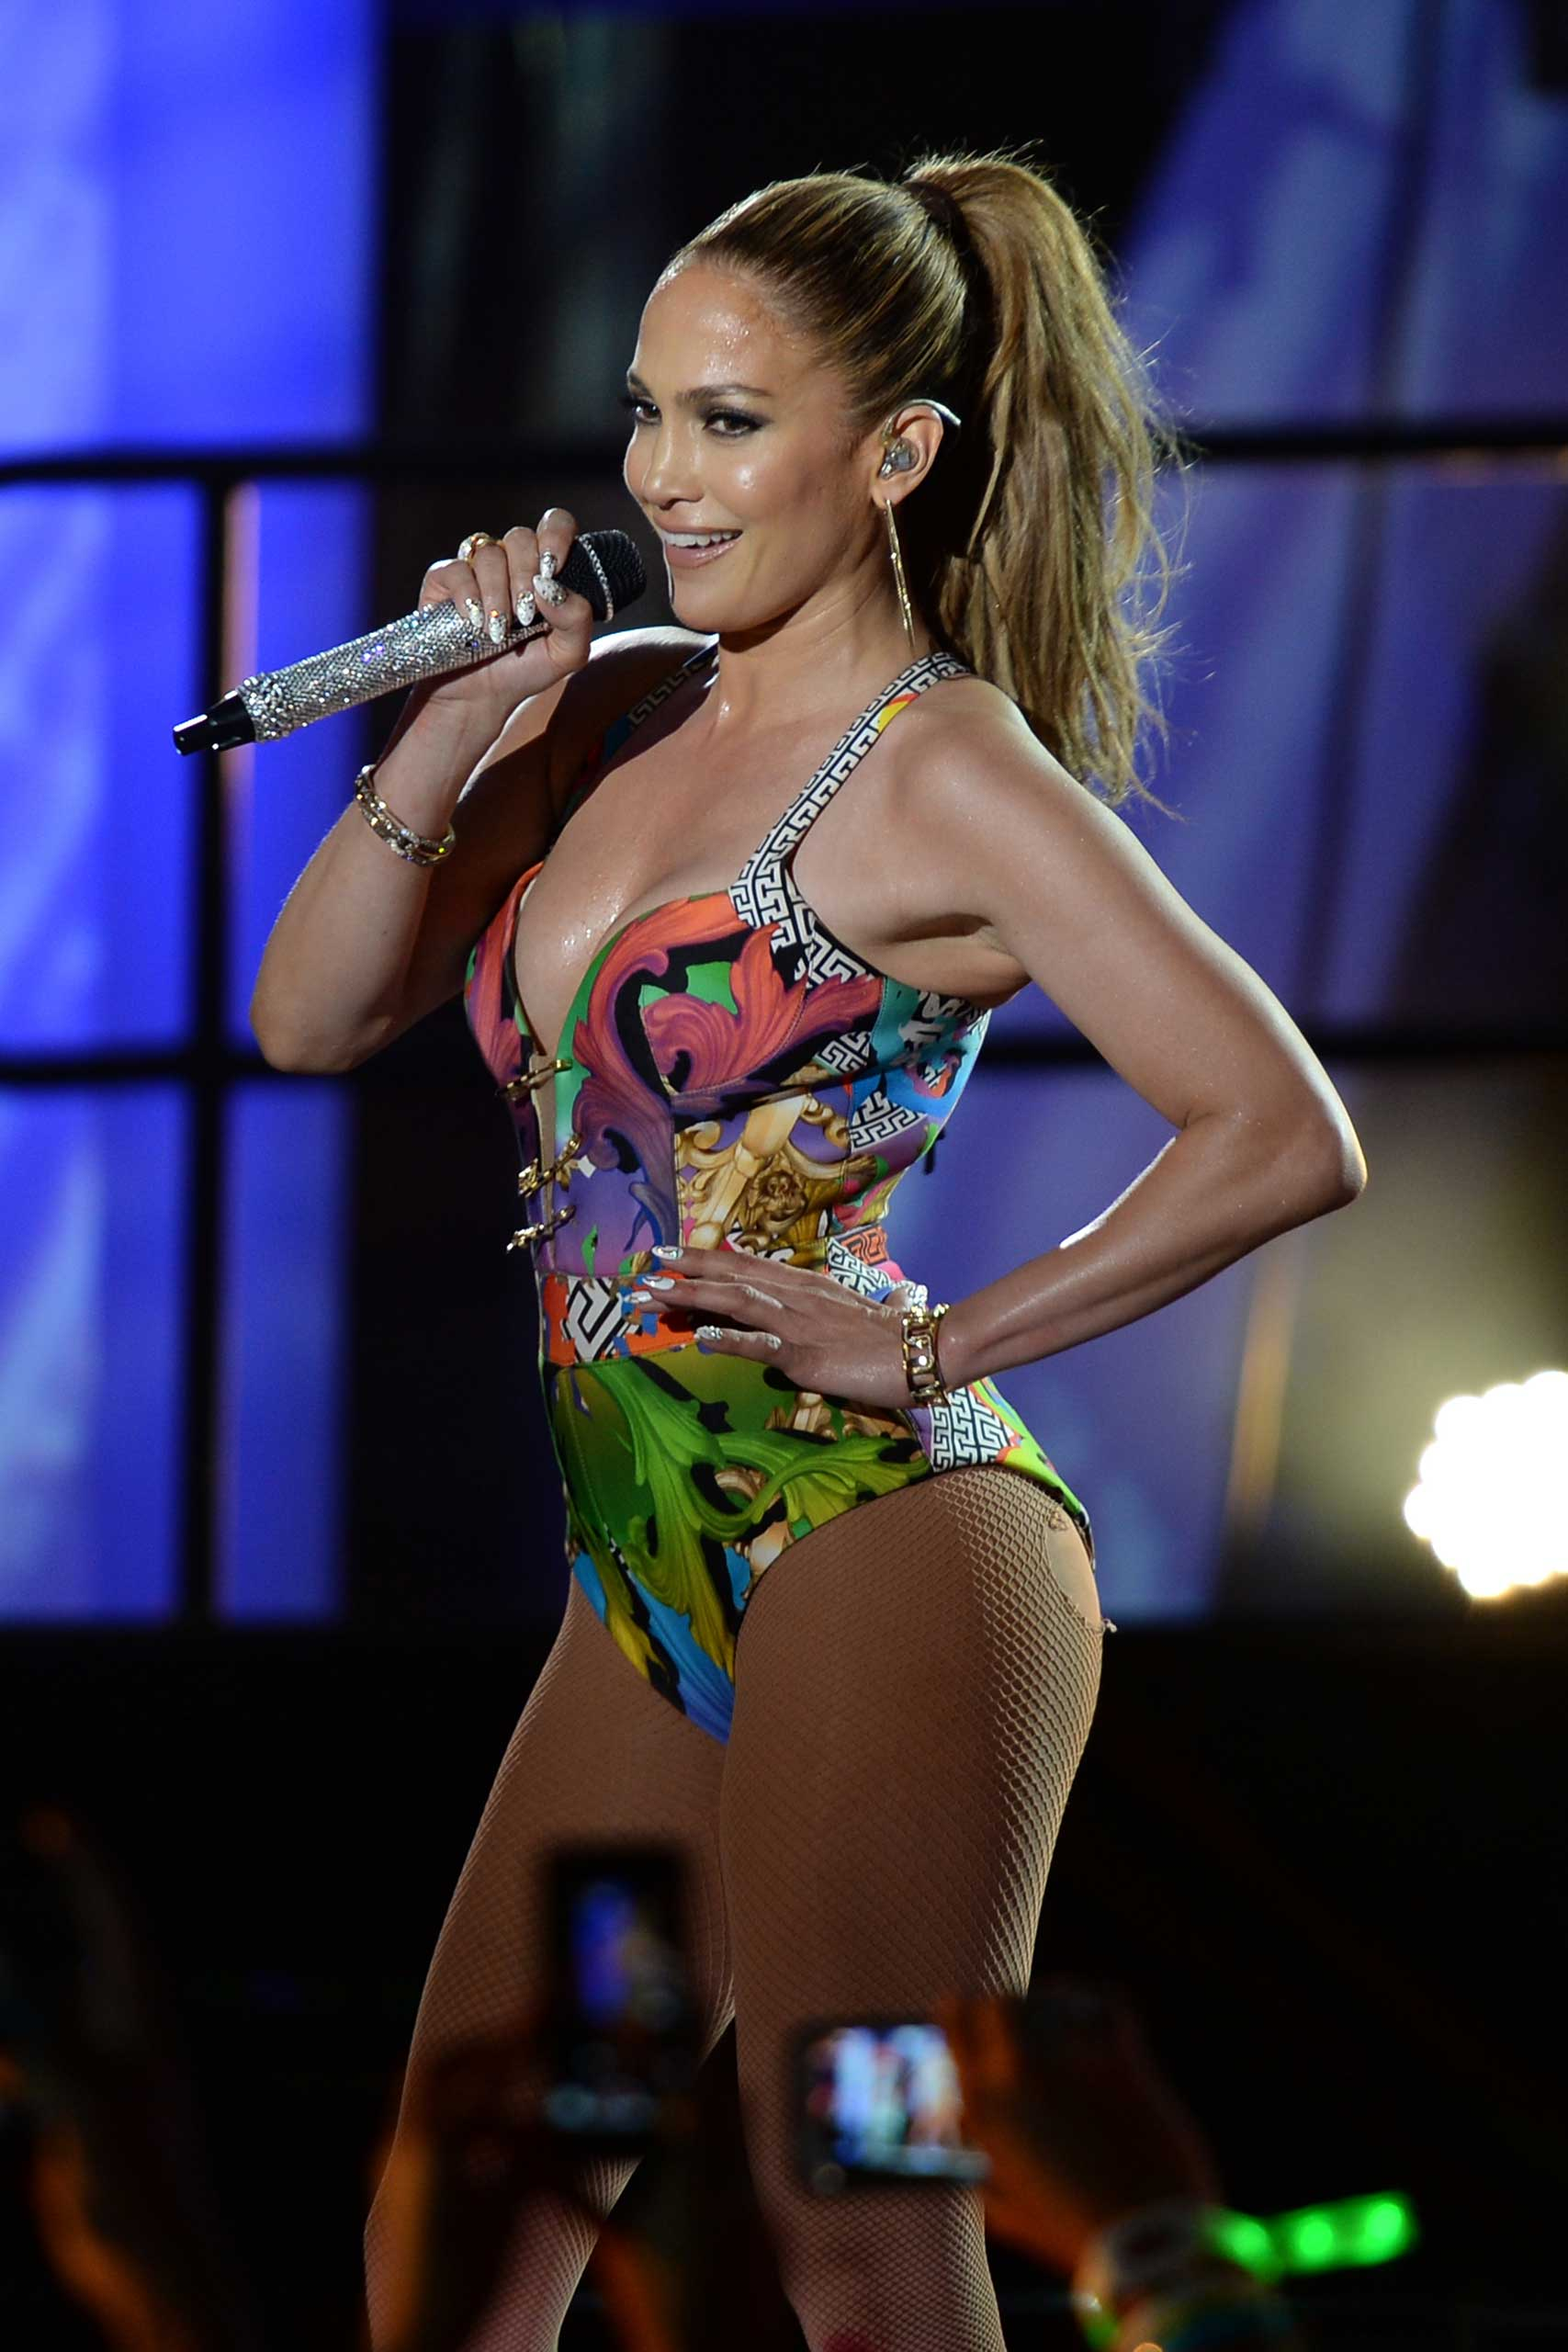 Jennifer Lopez performs in Miami Beach in 2014.